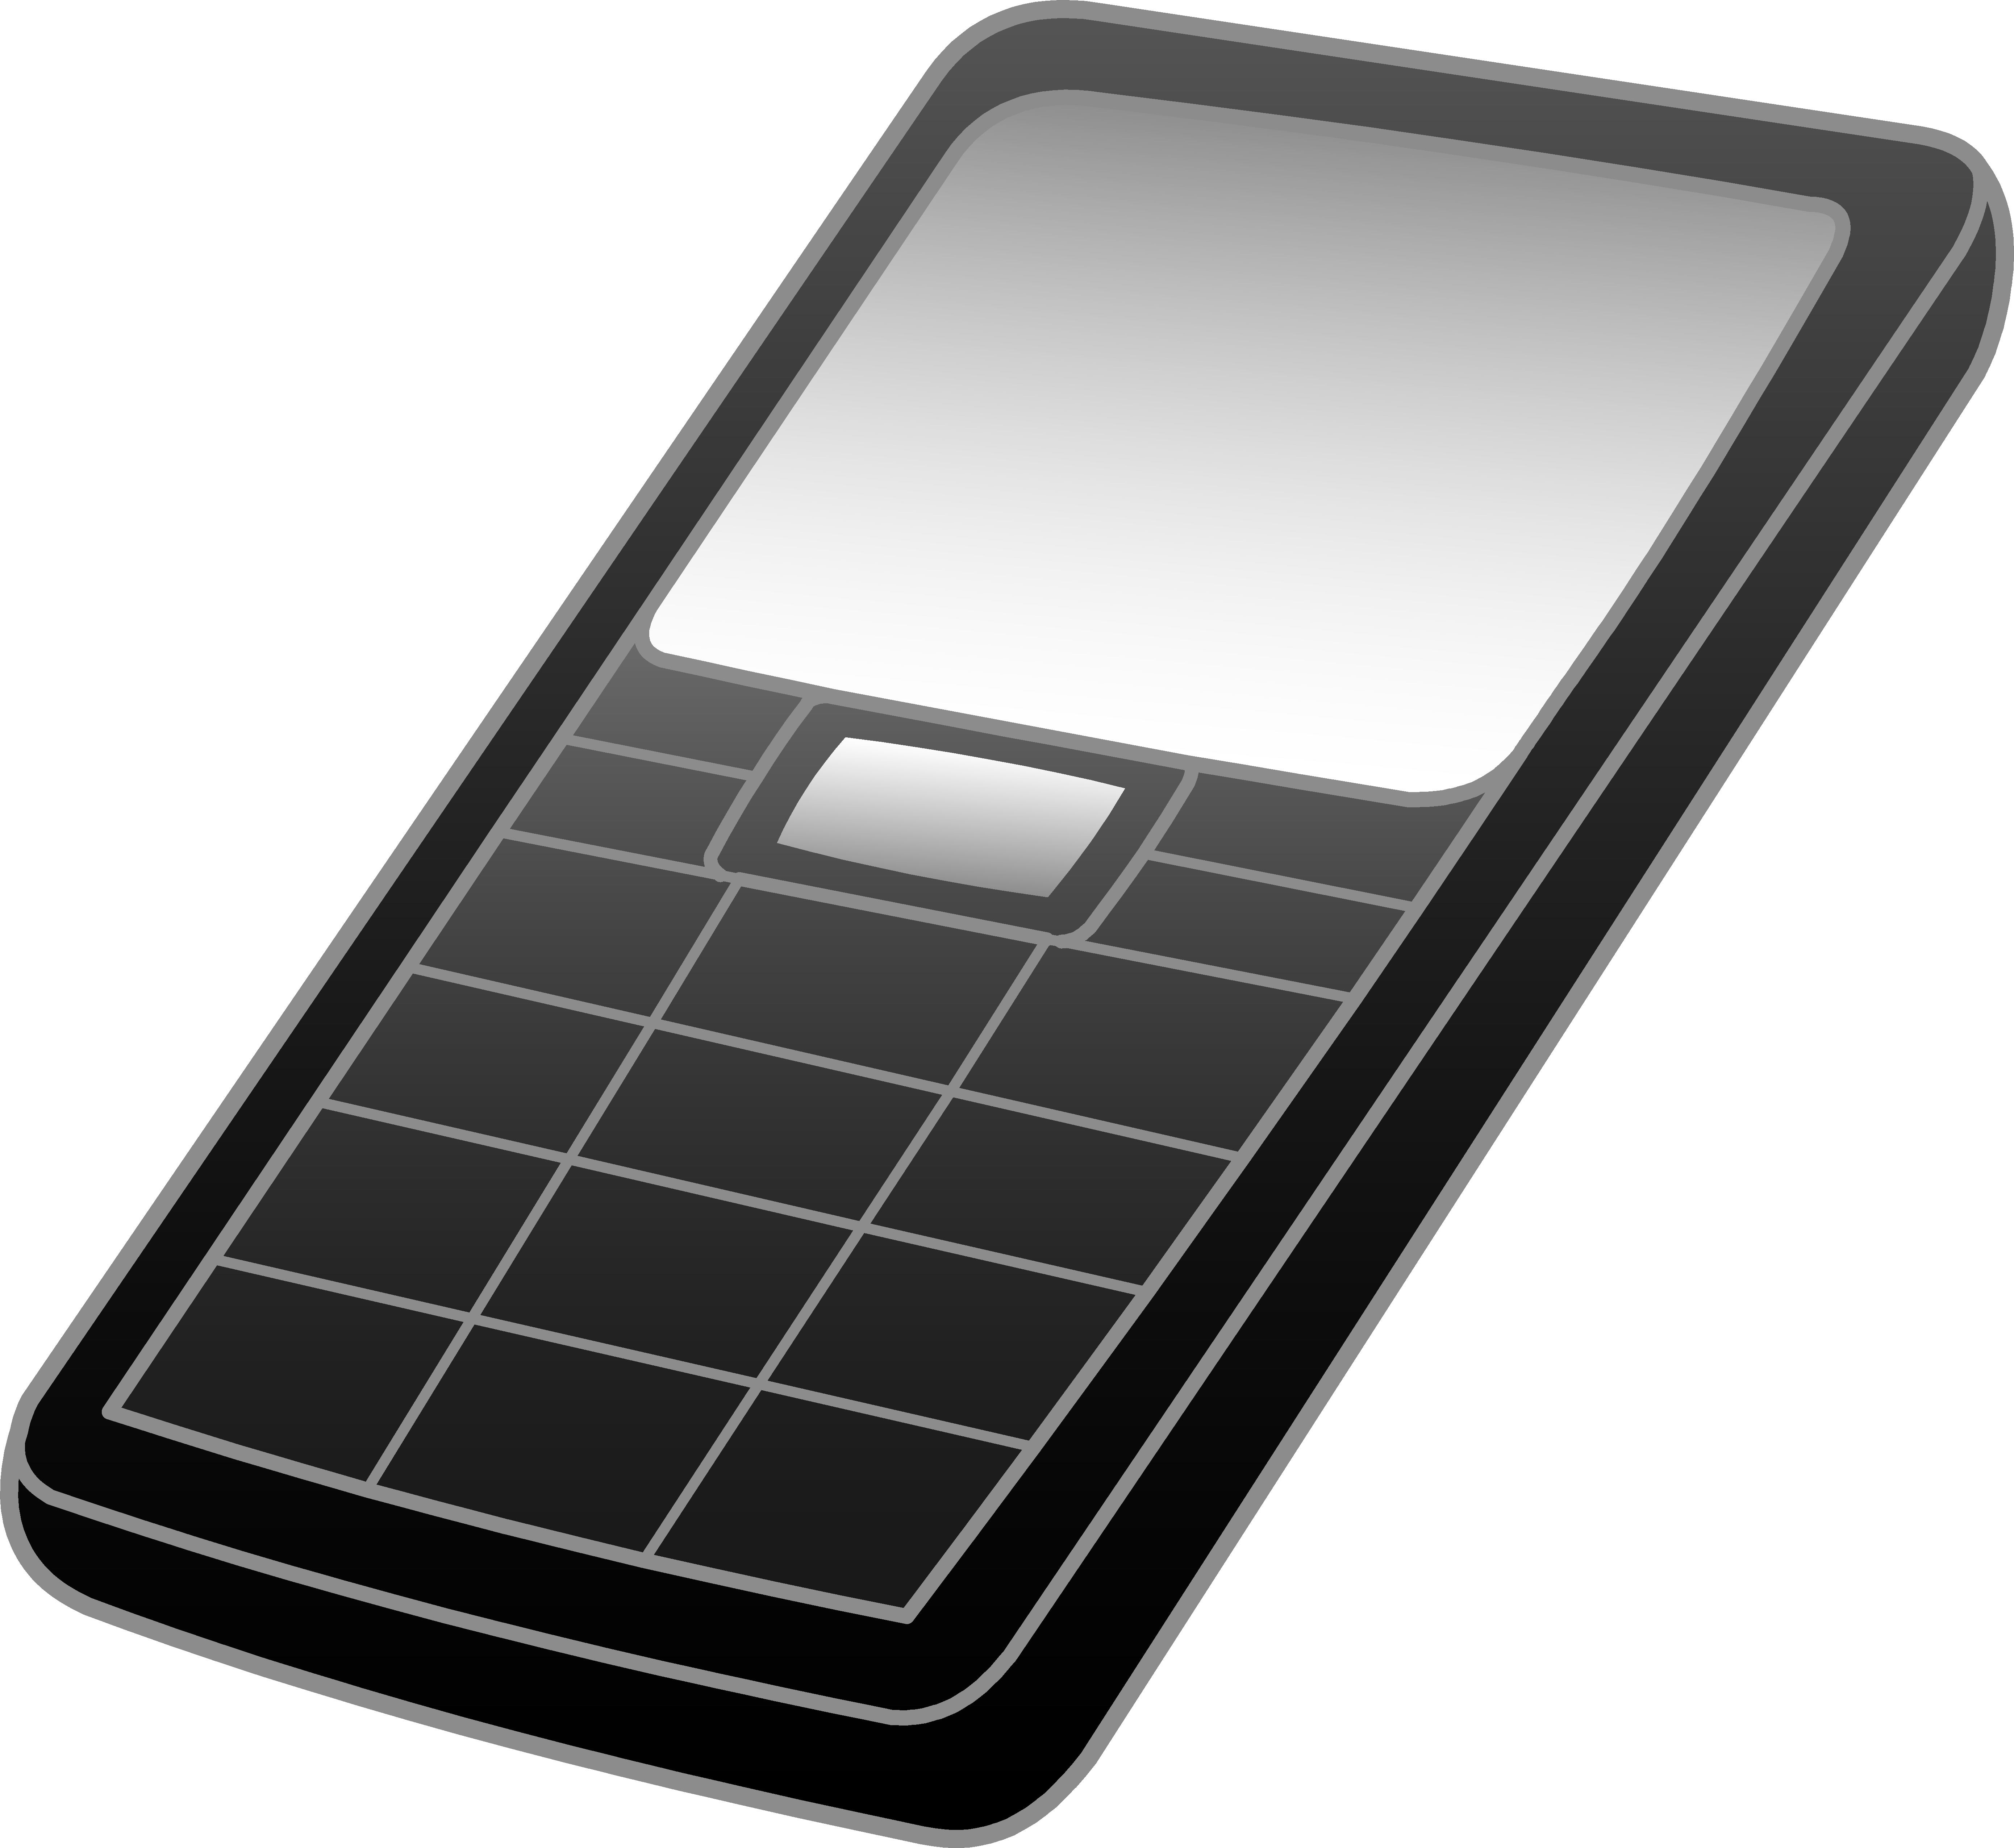 Black and grey cell. Phone clipart mobile calling